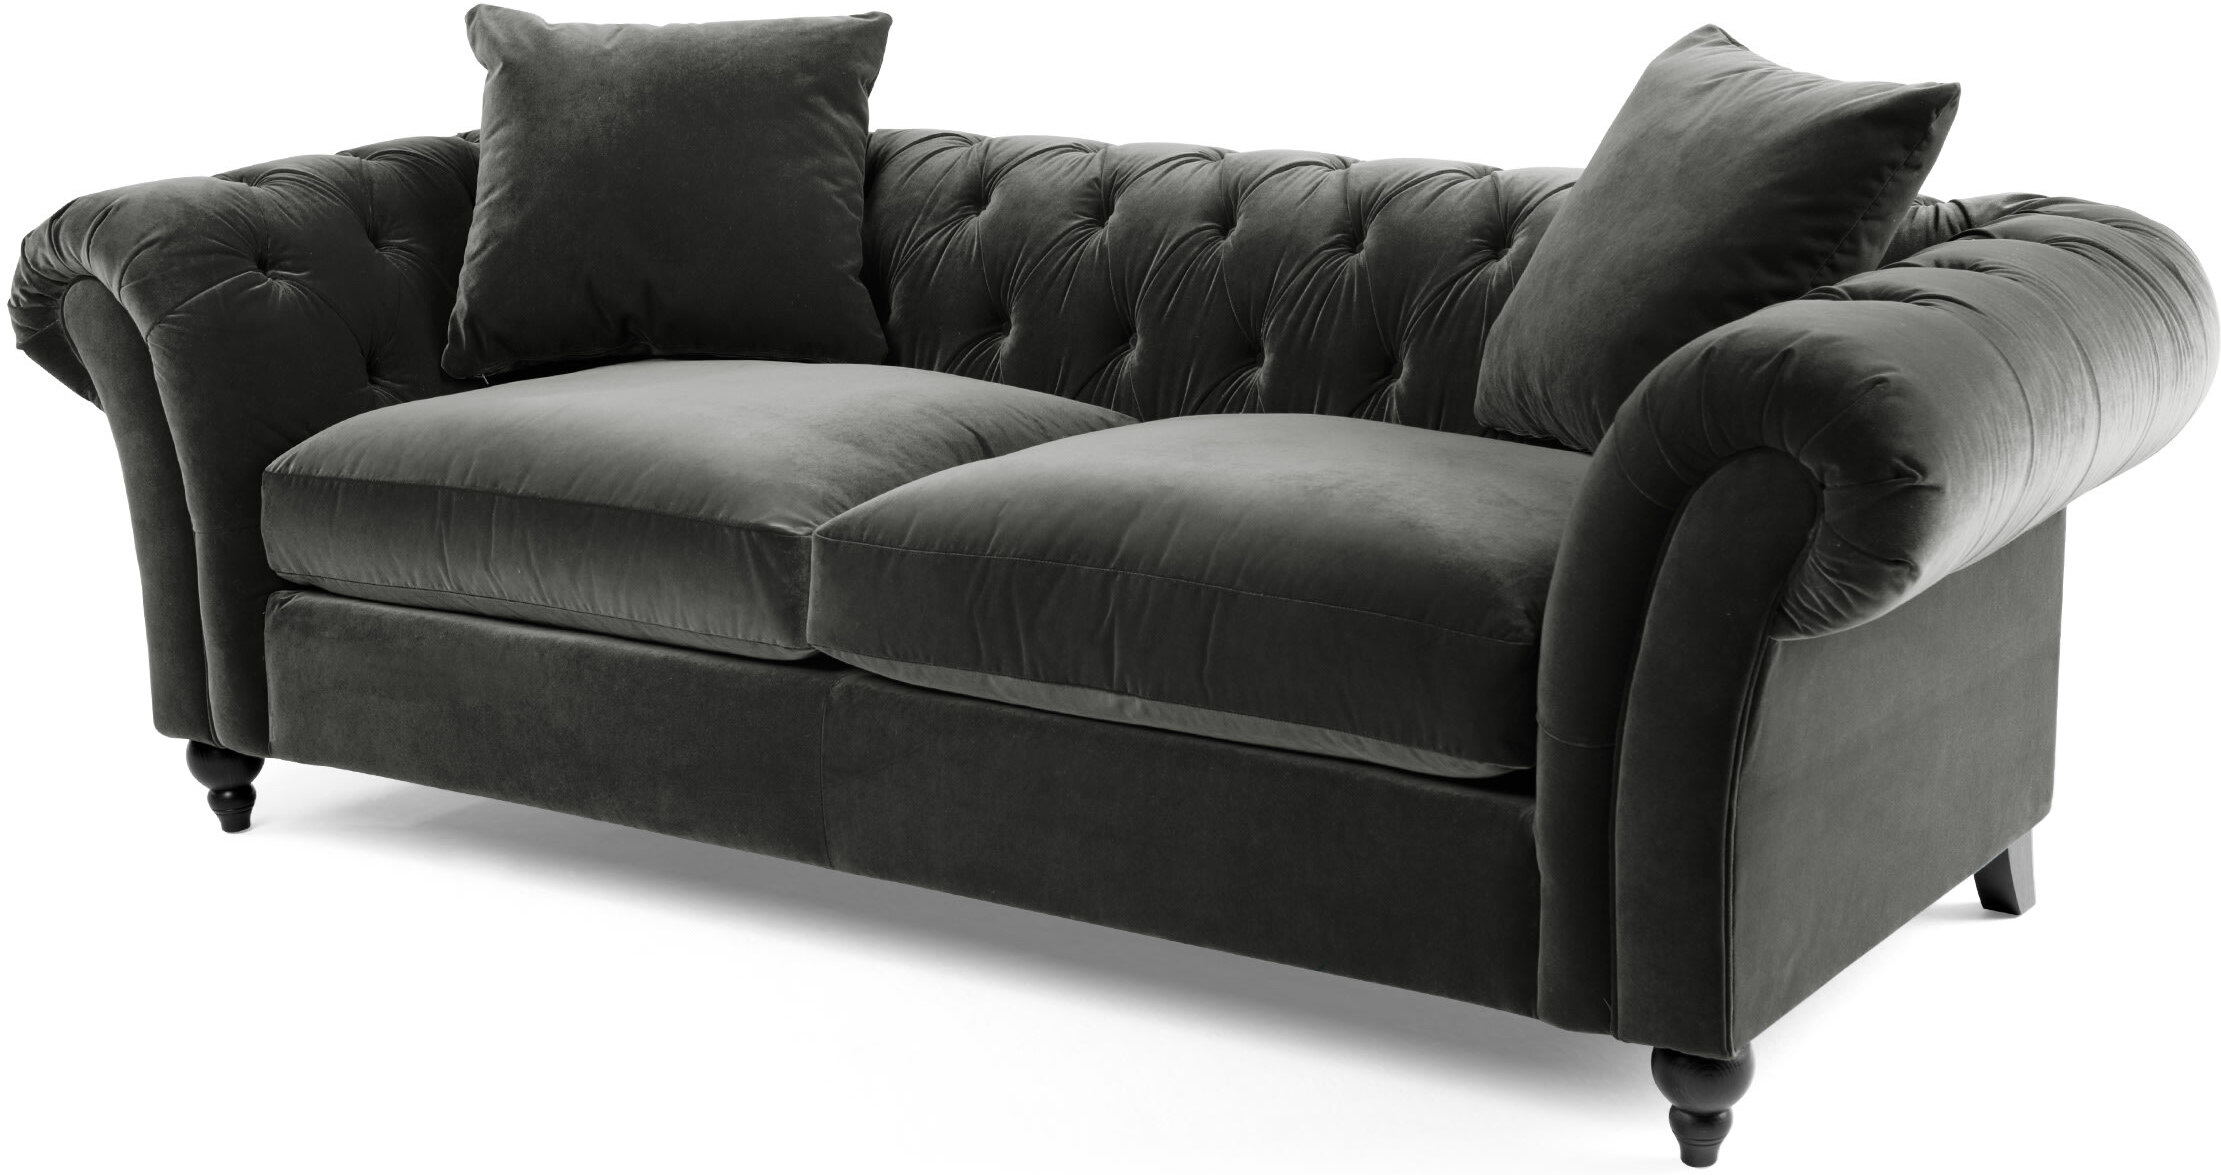 Buy cheap Grey chesterfield sofa compare Sofas prices for best UK deals